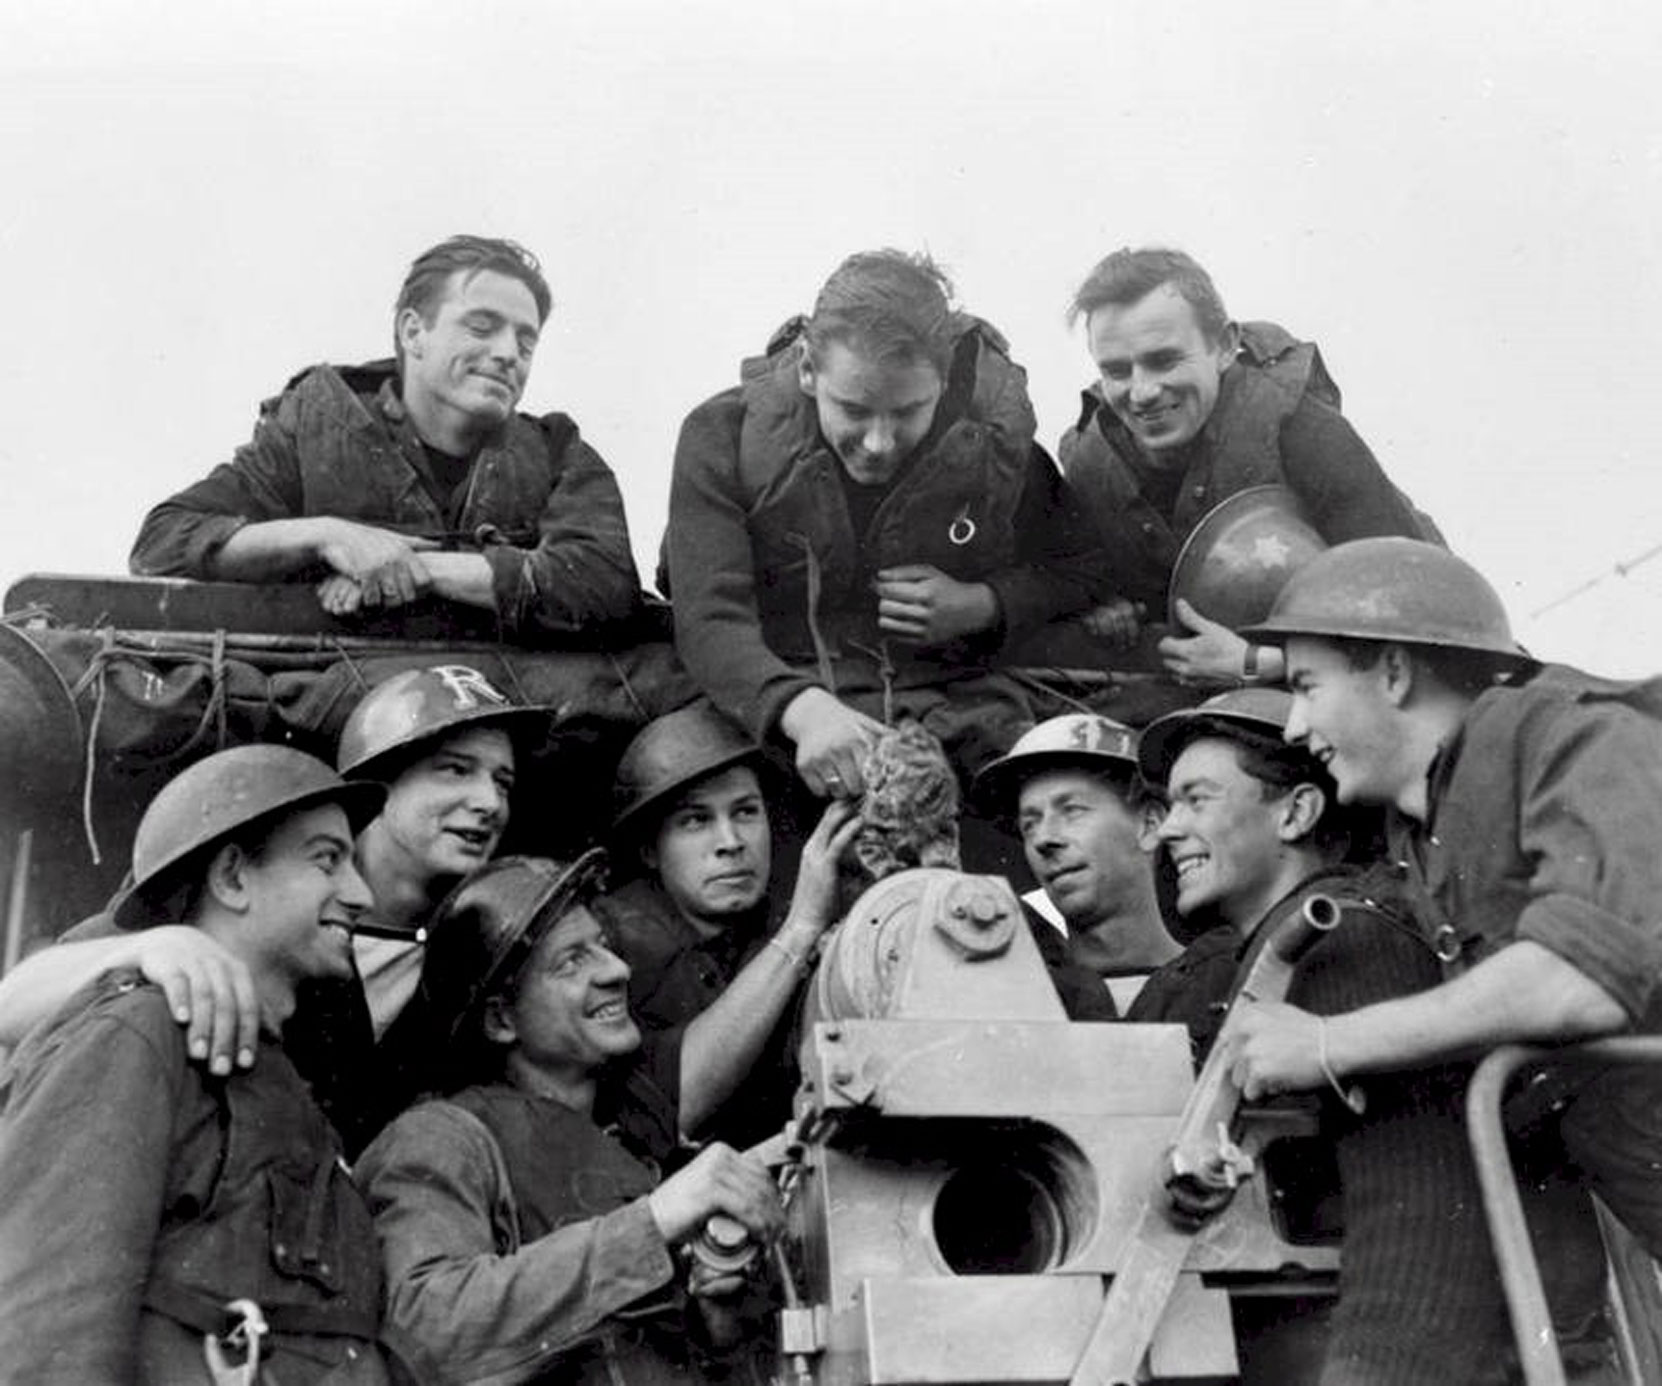 Douglas Barker (bottom row, 2nd from left, hand on gun) serving on HMCS Annan in 1945 (photo courtesy of Douglas Barker's daughter Christine)